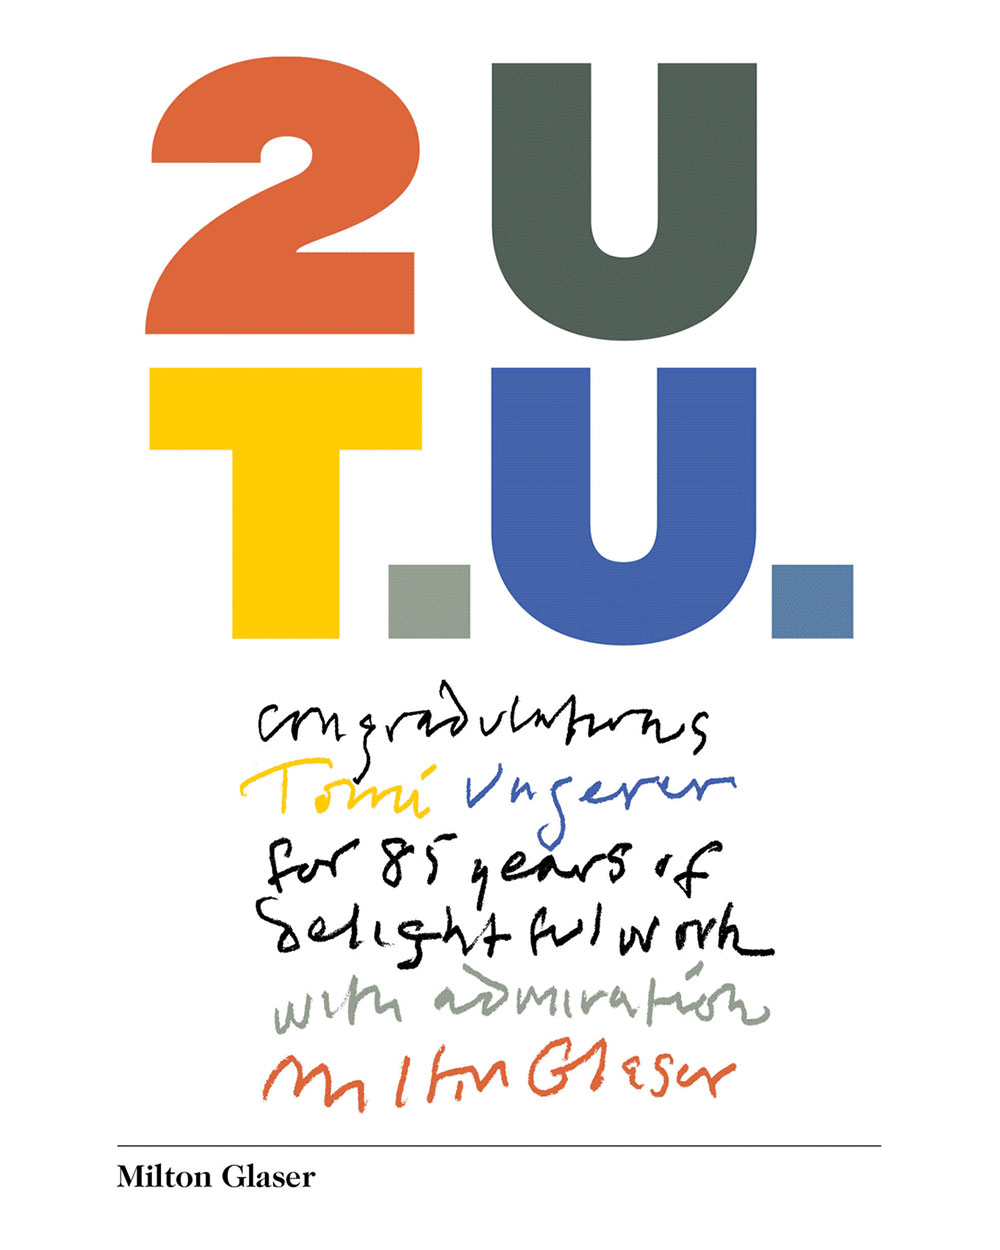 Birthday greeting from Milton Glaser, from http://www.phaidon.com/CelebrateTomi